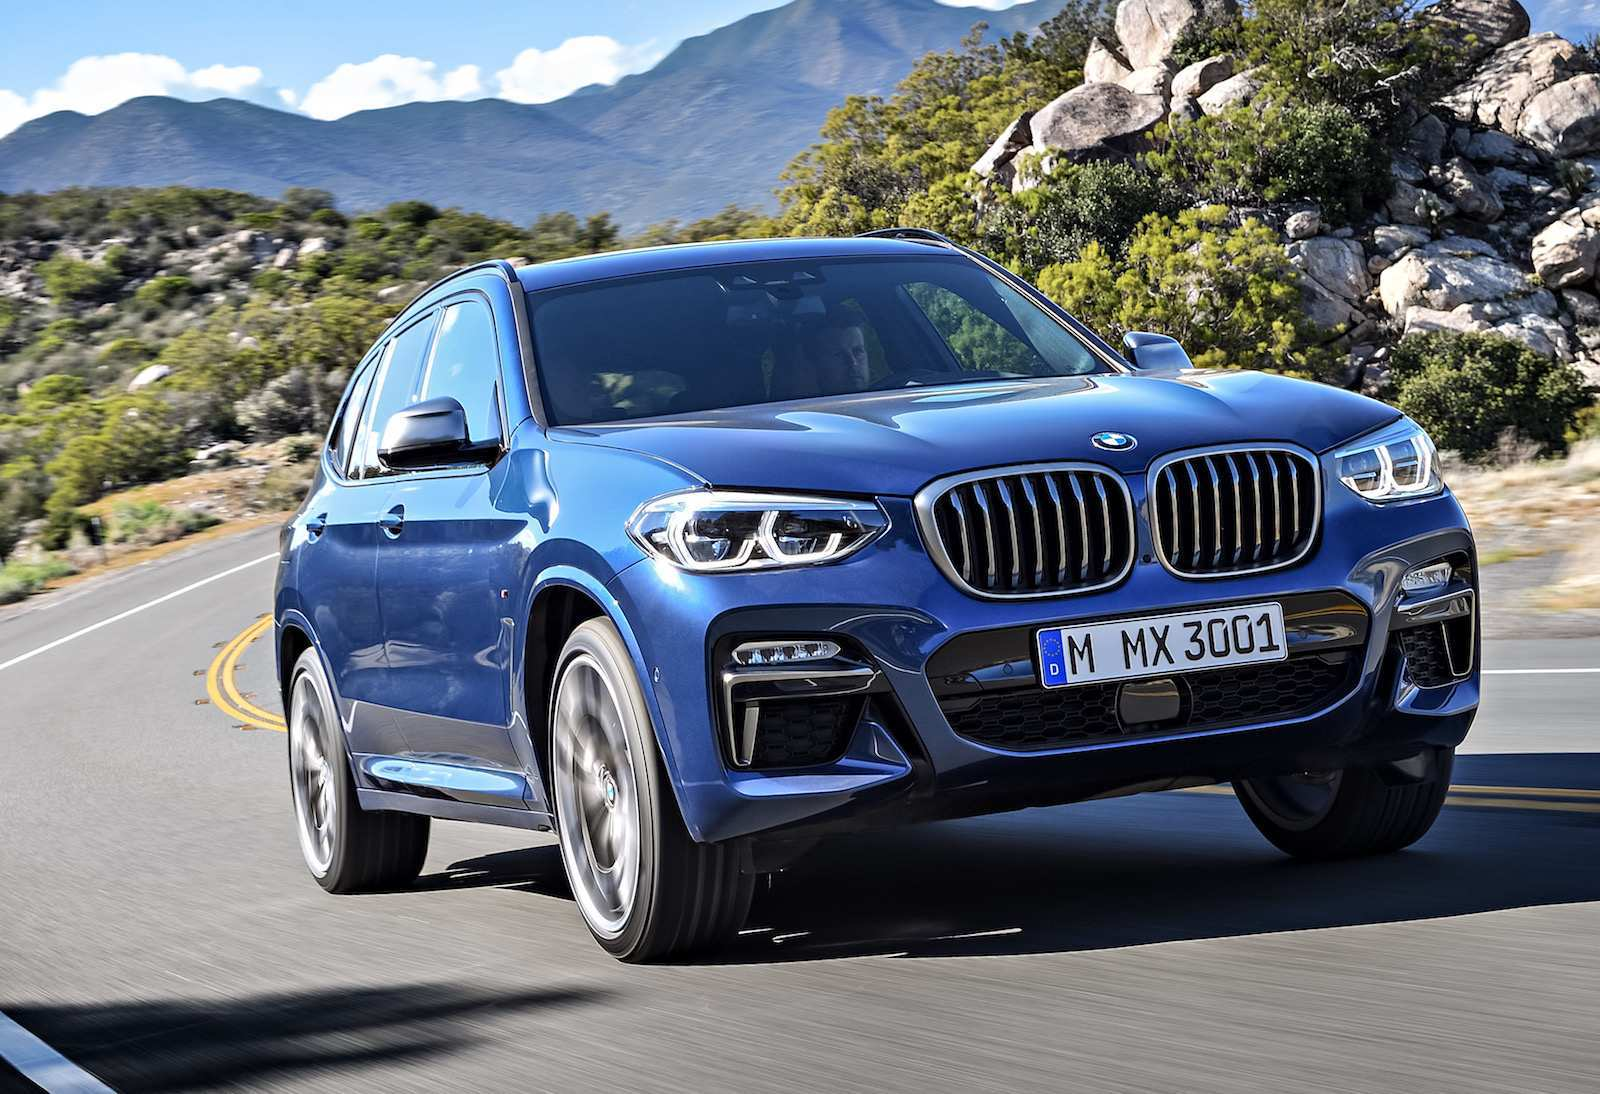 60 Best Review 2019 Bmw X3 Diesel Ratings by 2019 Bmw X3 Diesel